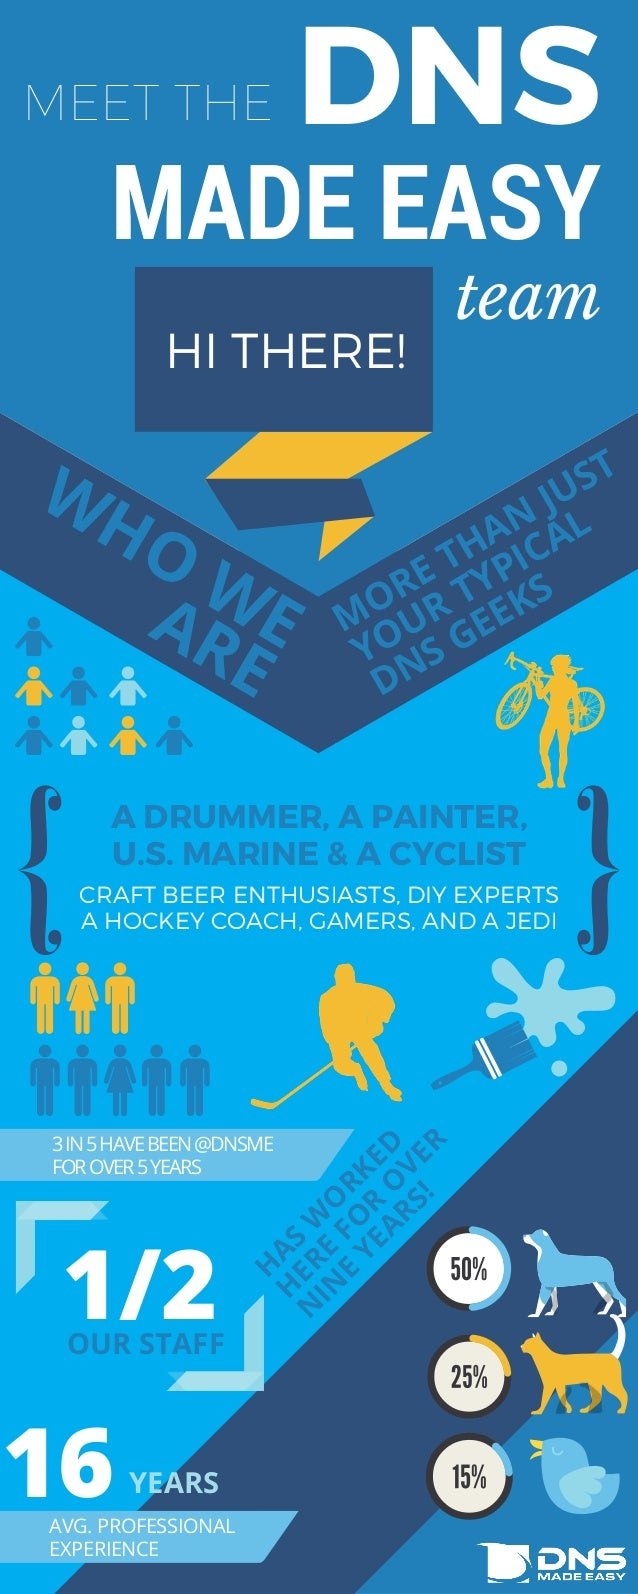 MEET THE HI THERE! DNS MADE EASY team CRAFT BEER ENTHUSIASTS, DIY EXPERTS A HOCKEY COACH, GAMERS, AND A JEDI A DRUMMER, A ...